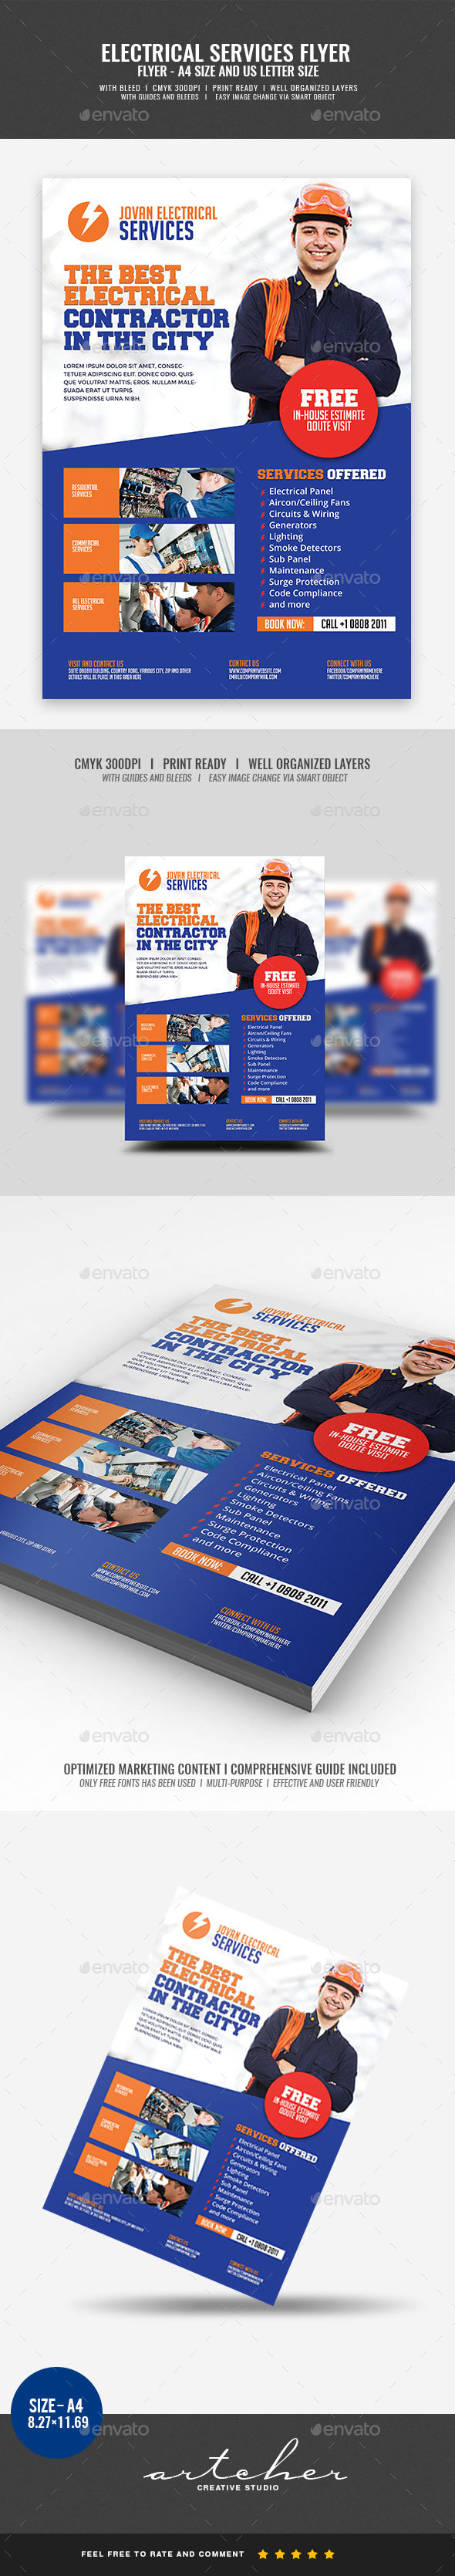 Electrical Services Flyer - Corporate Flyers